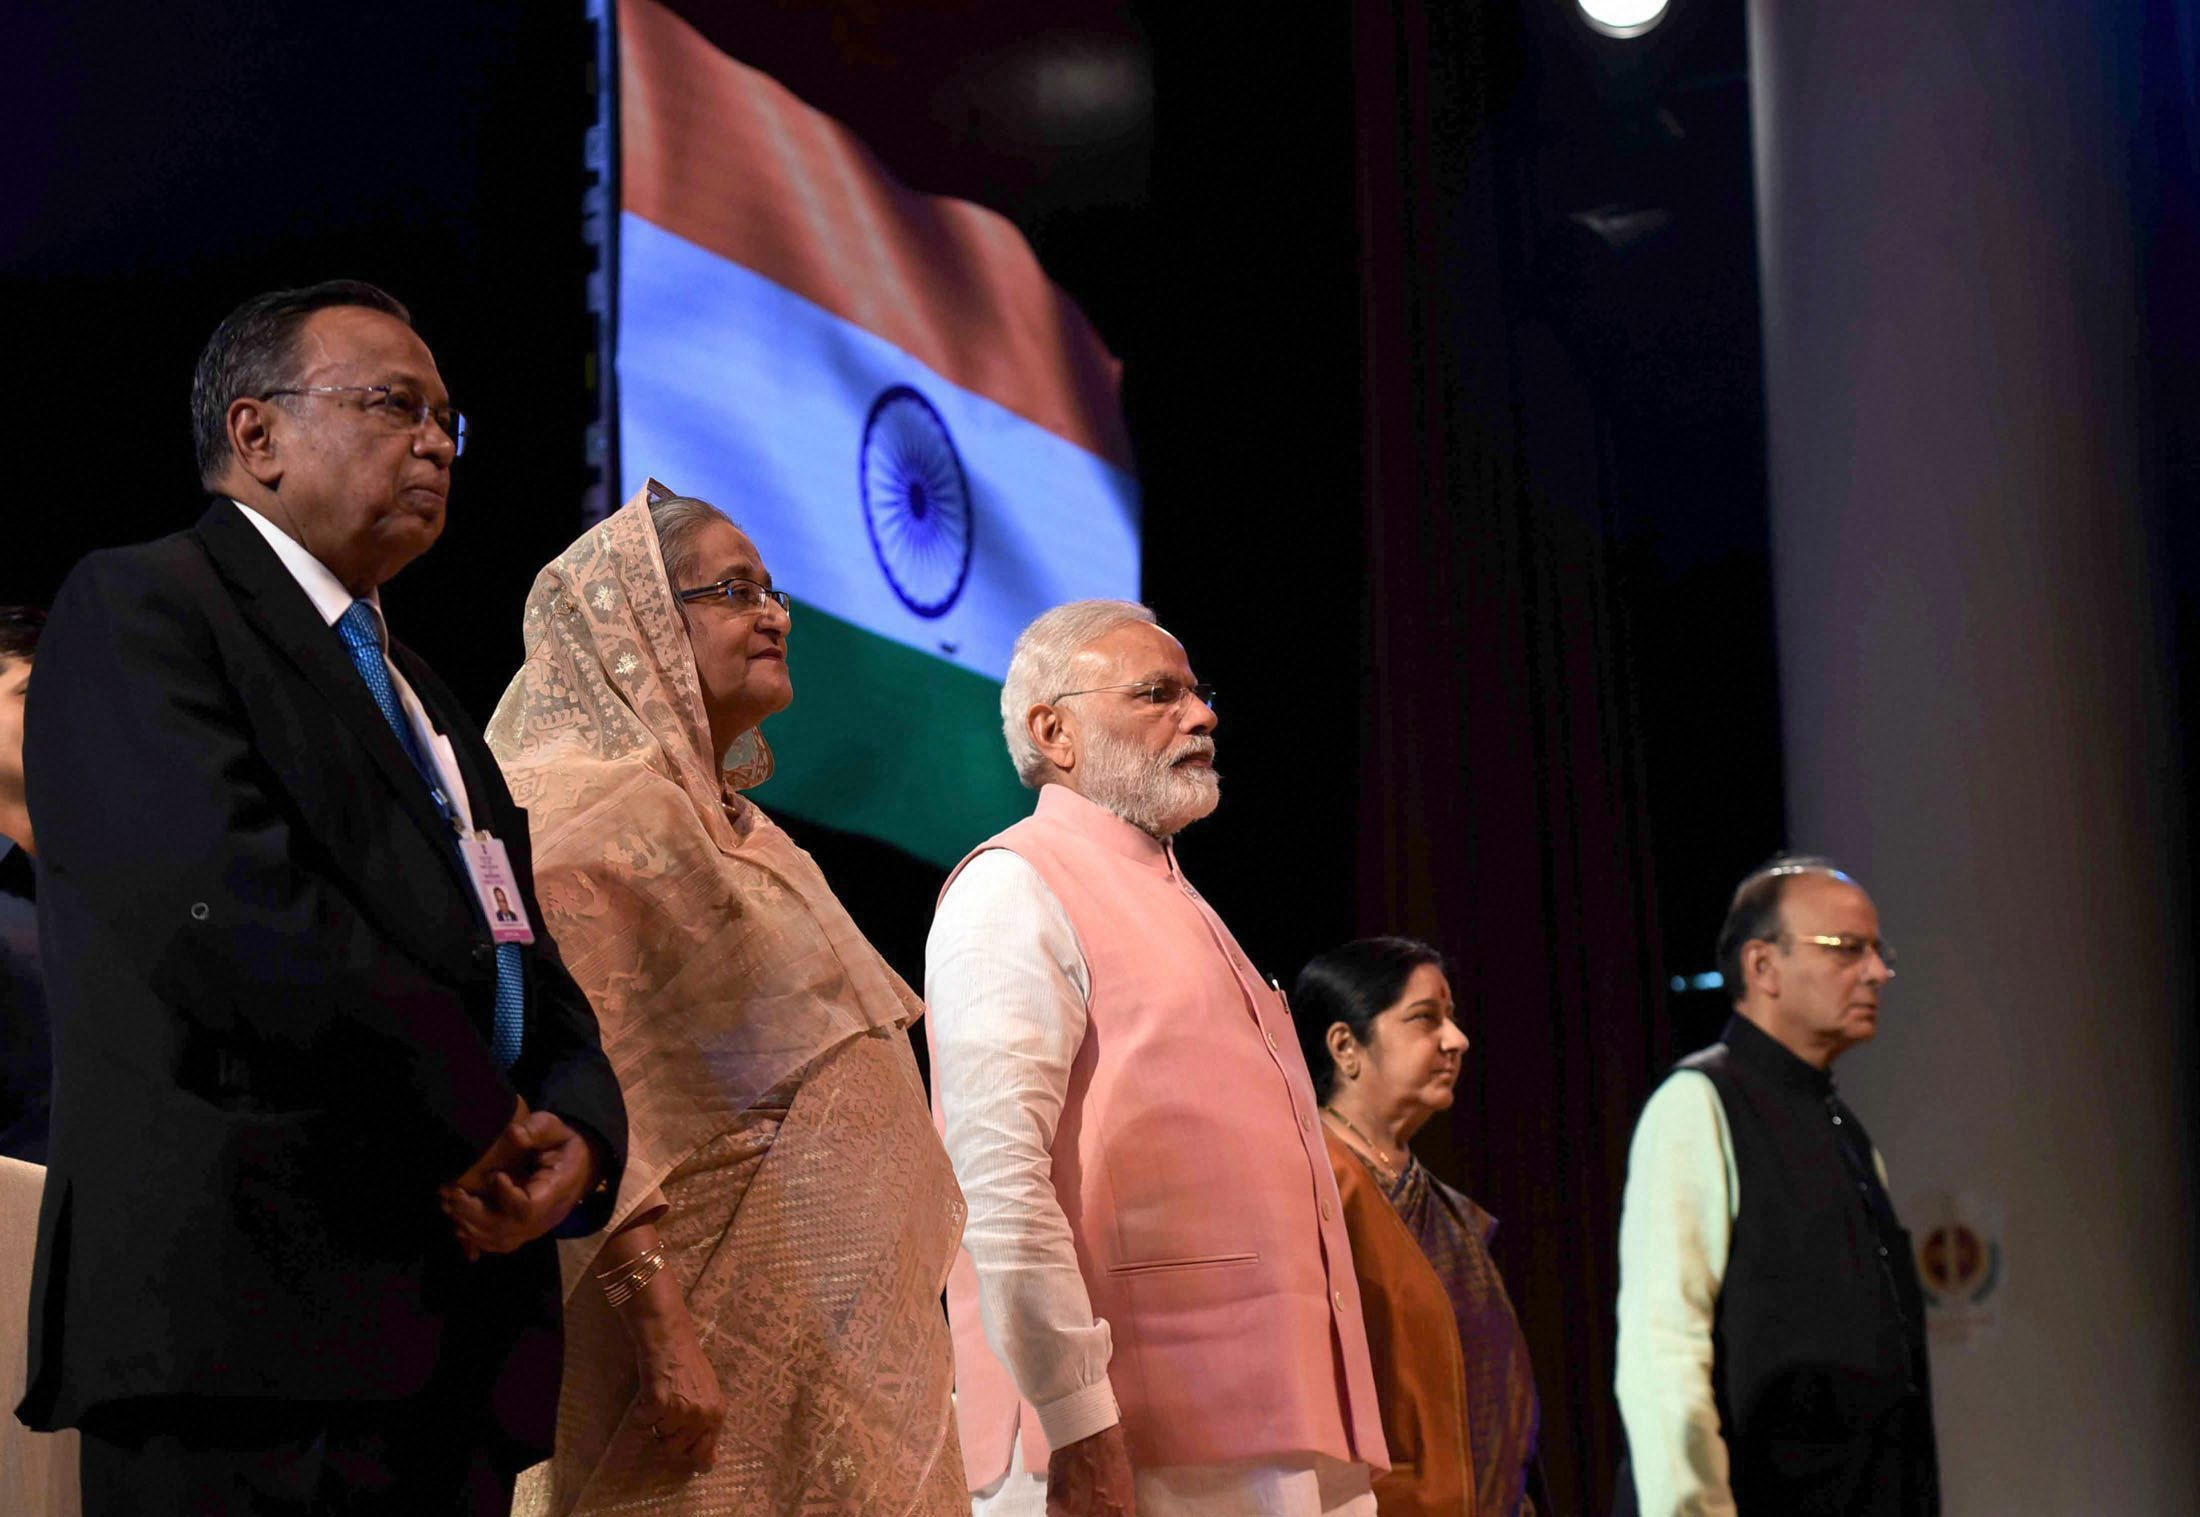 Prime Minister Narendra Modi with his Bangladeshi counterpart Sheikh Hasina at Sommanona Ceremony to salute Indian Soldiers who fought in 1971 war, in New Delhi on Saturday. Also seen are Union ministers Arun Jaitley and Sushma Swaraj. Credit: PTI